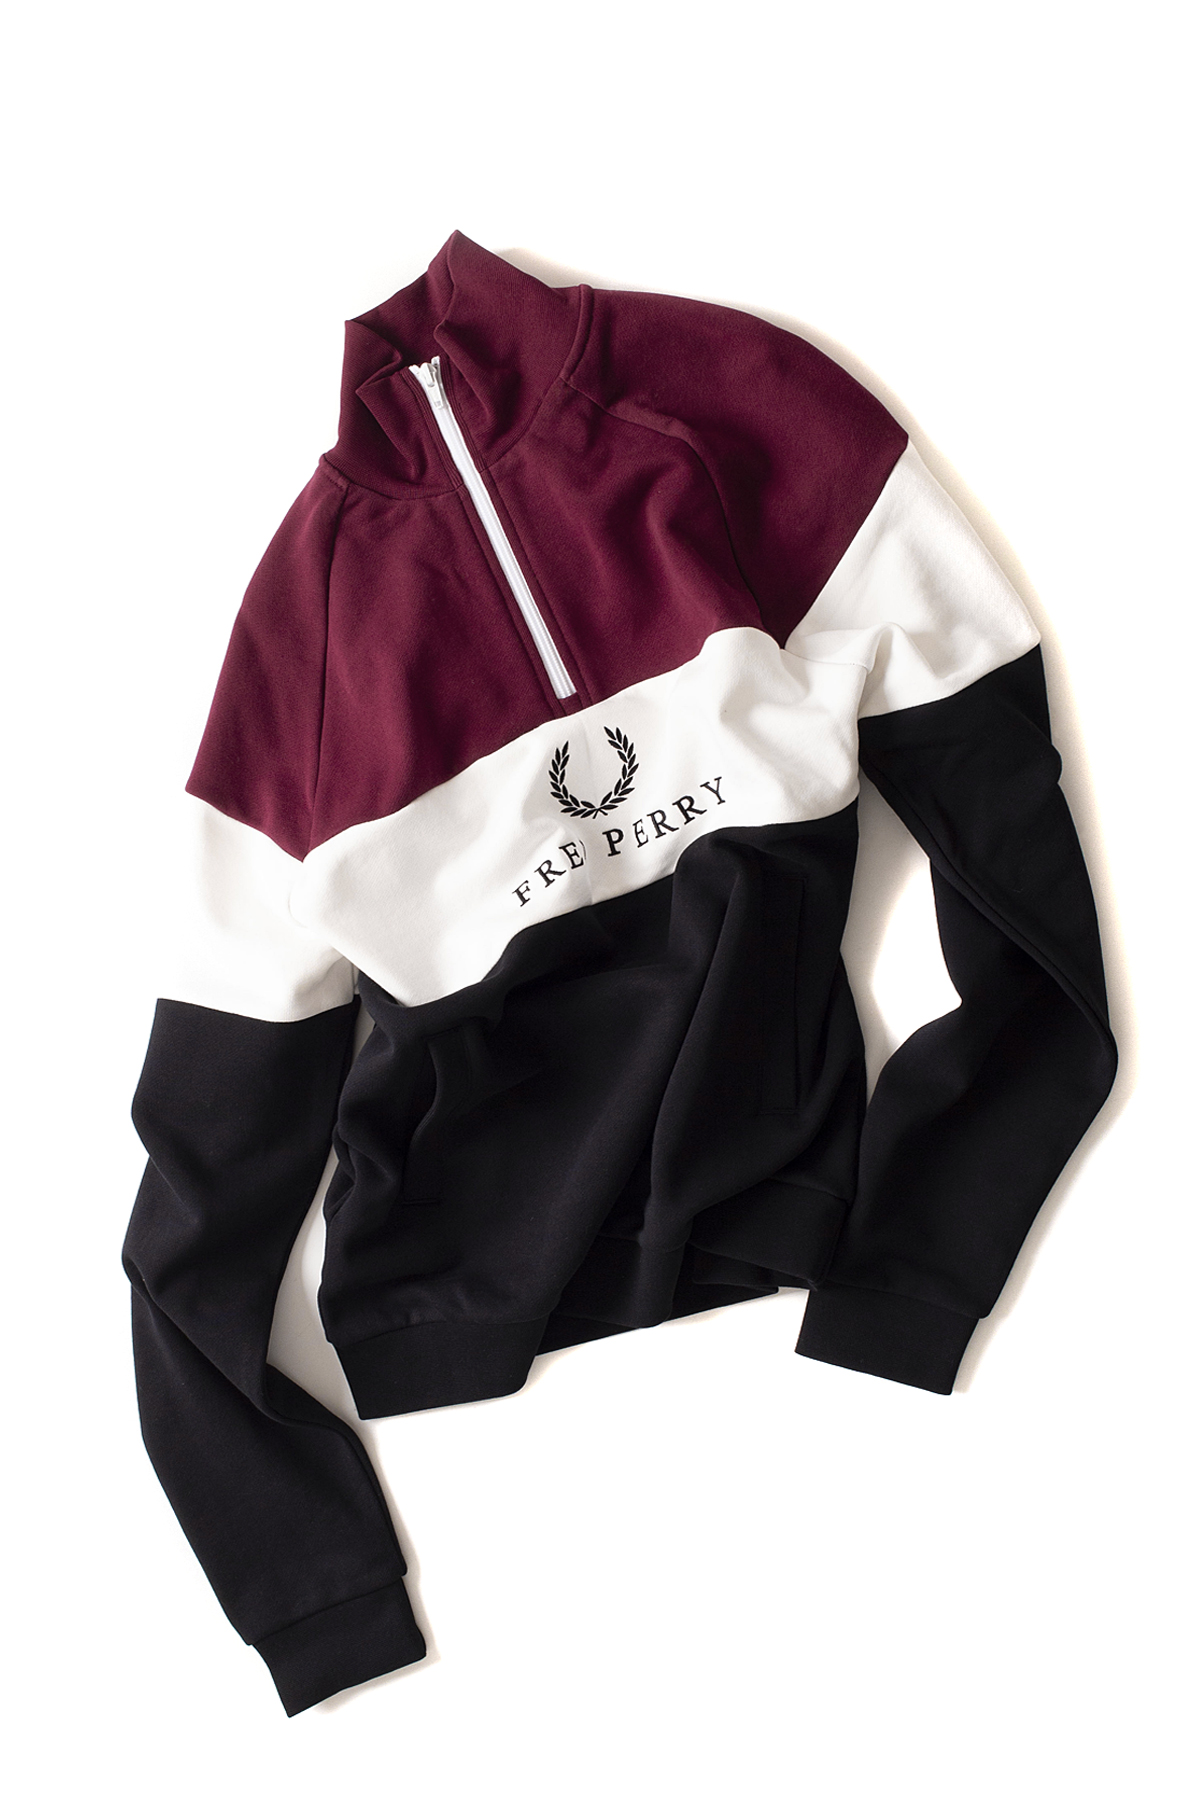 FRED PERRY : Embroidered Panel Sweatshirt (Tawny Port)